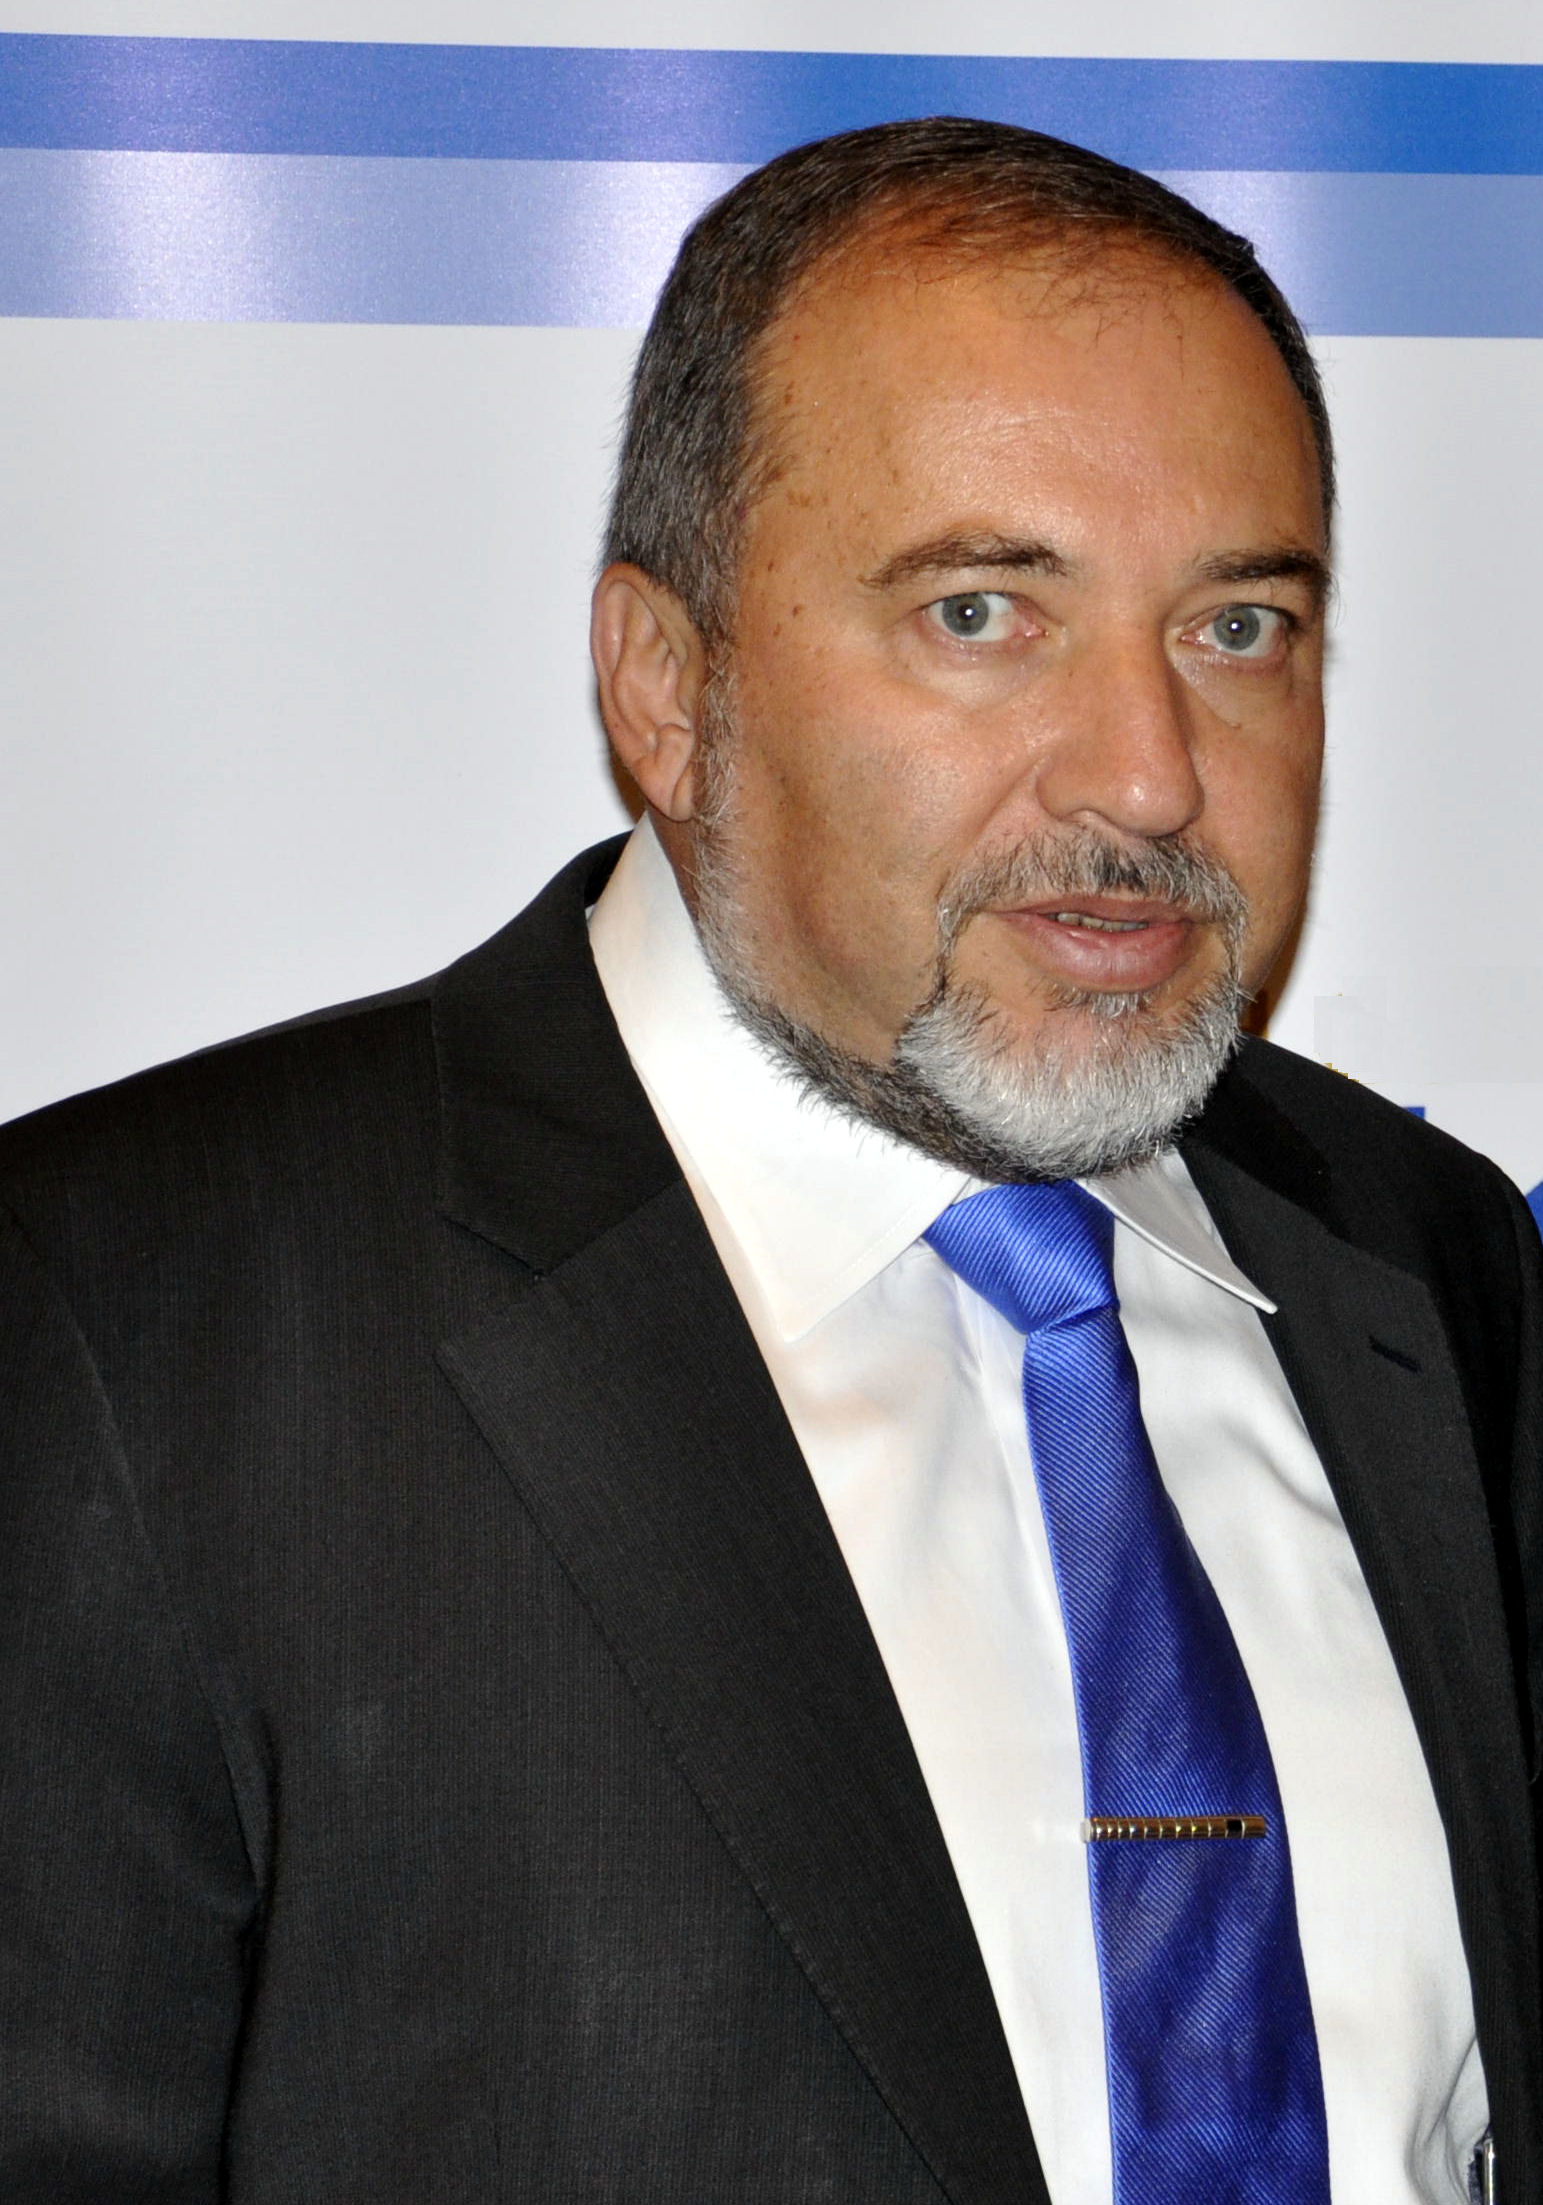 Avigdor Lieberman, pictured, said the Palestinian Authority's failure to condemn an IDF soldier's murder means the PA does not seek peace with Israel. Credit: Michael Thaidigsmann via Wikimedia Commons.